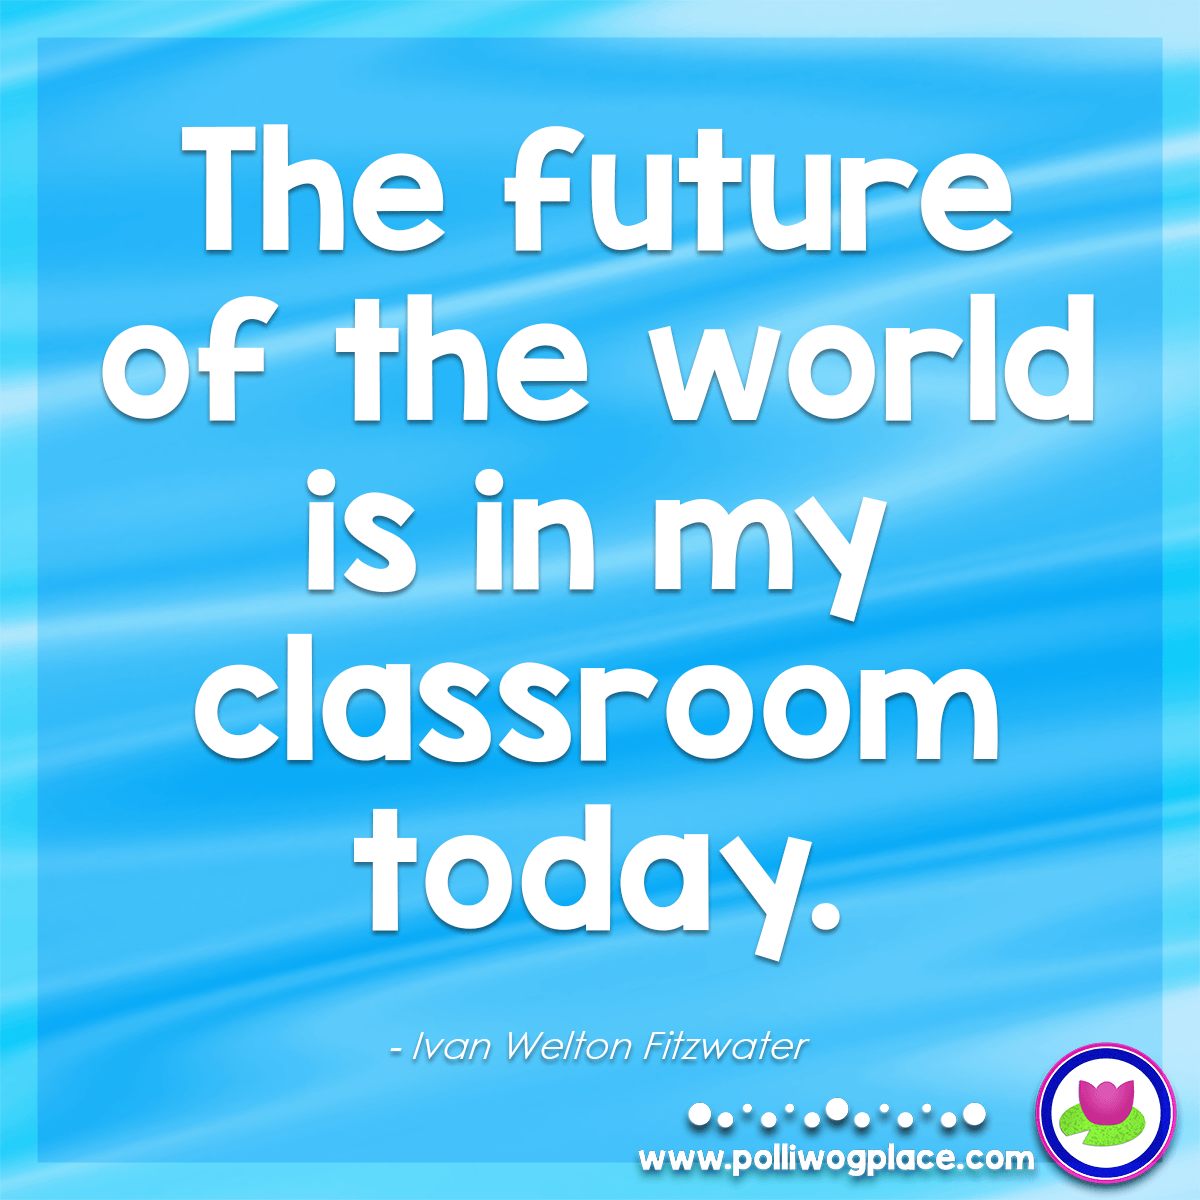 Quote - The future of the world is in my classroom today.